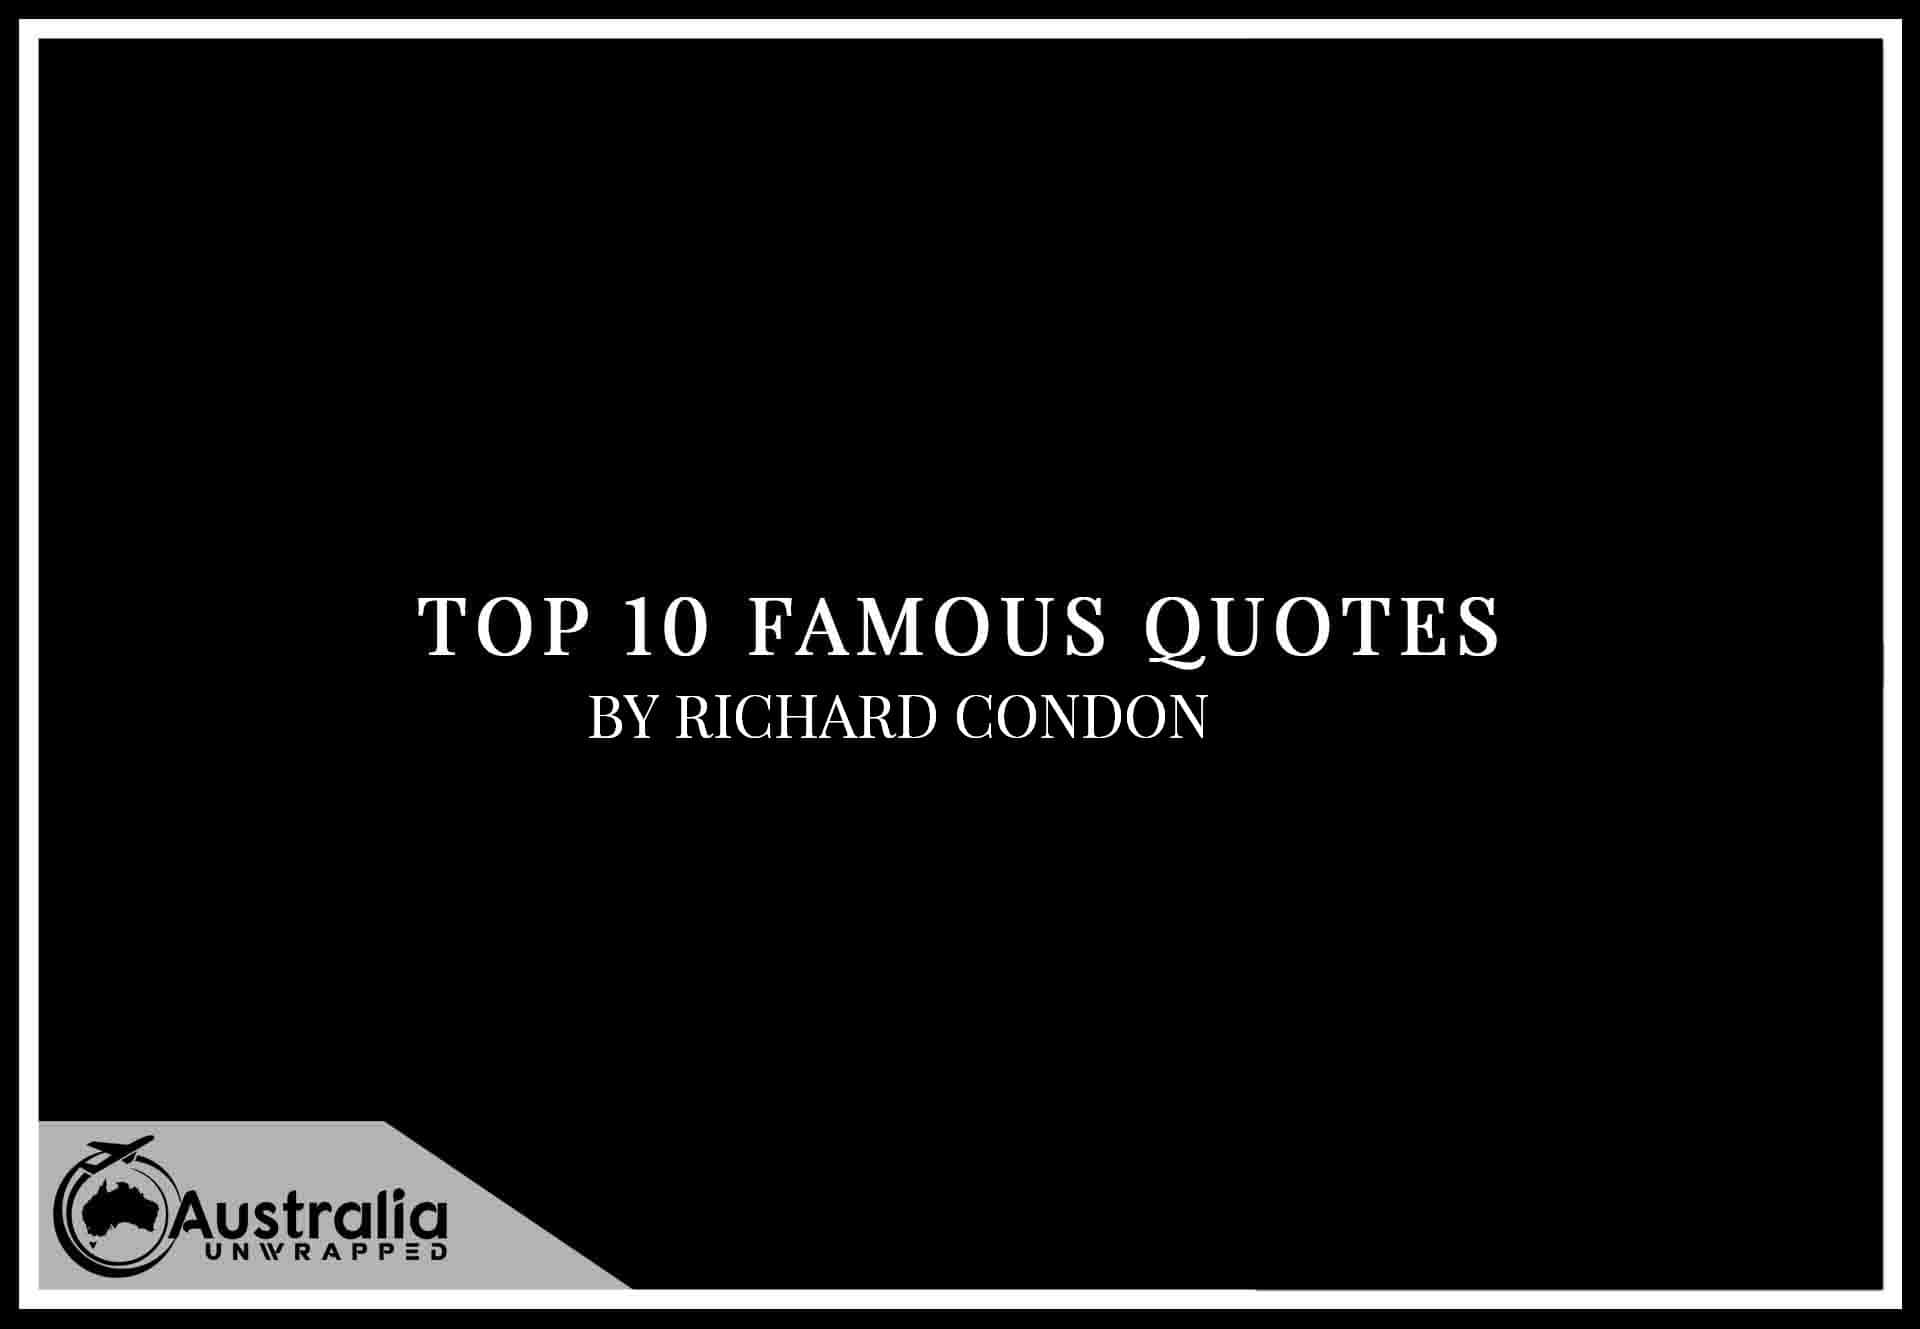 Top 10 Famous Quotes by Author Richard Condon